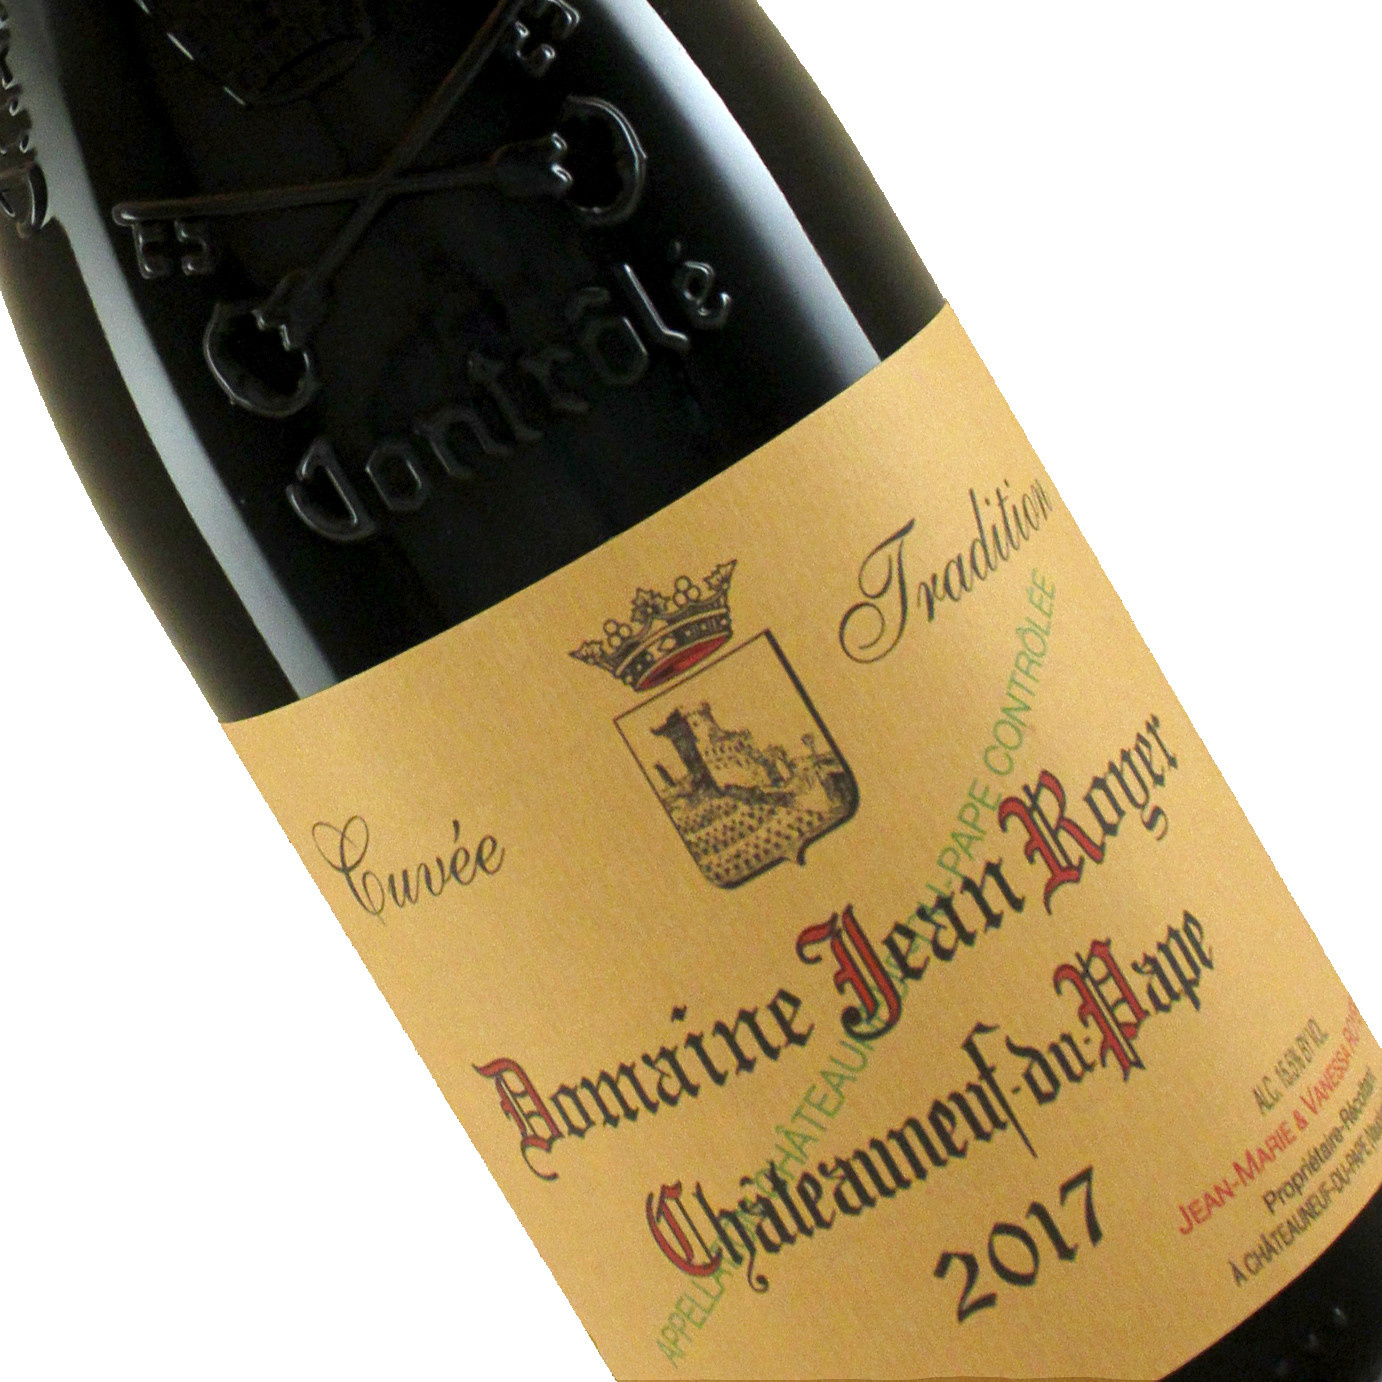 Domaine Jean Royer 2017 Chateauneuf du Pape, Cuvee Tradition